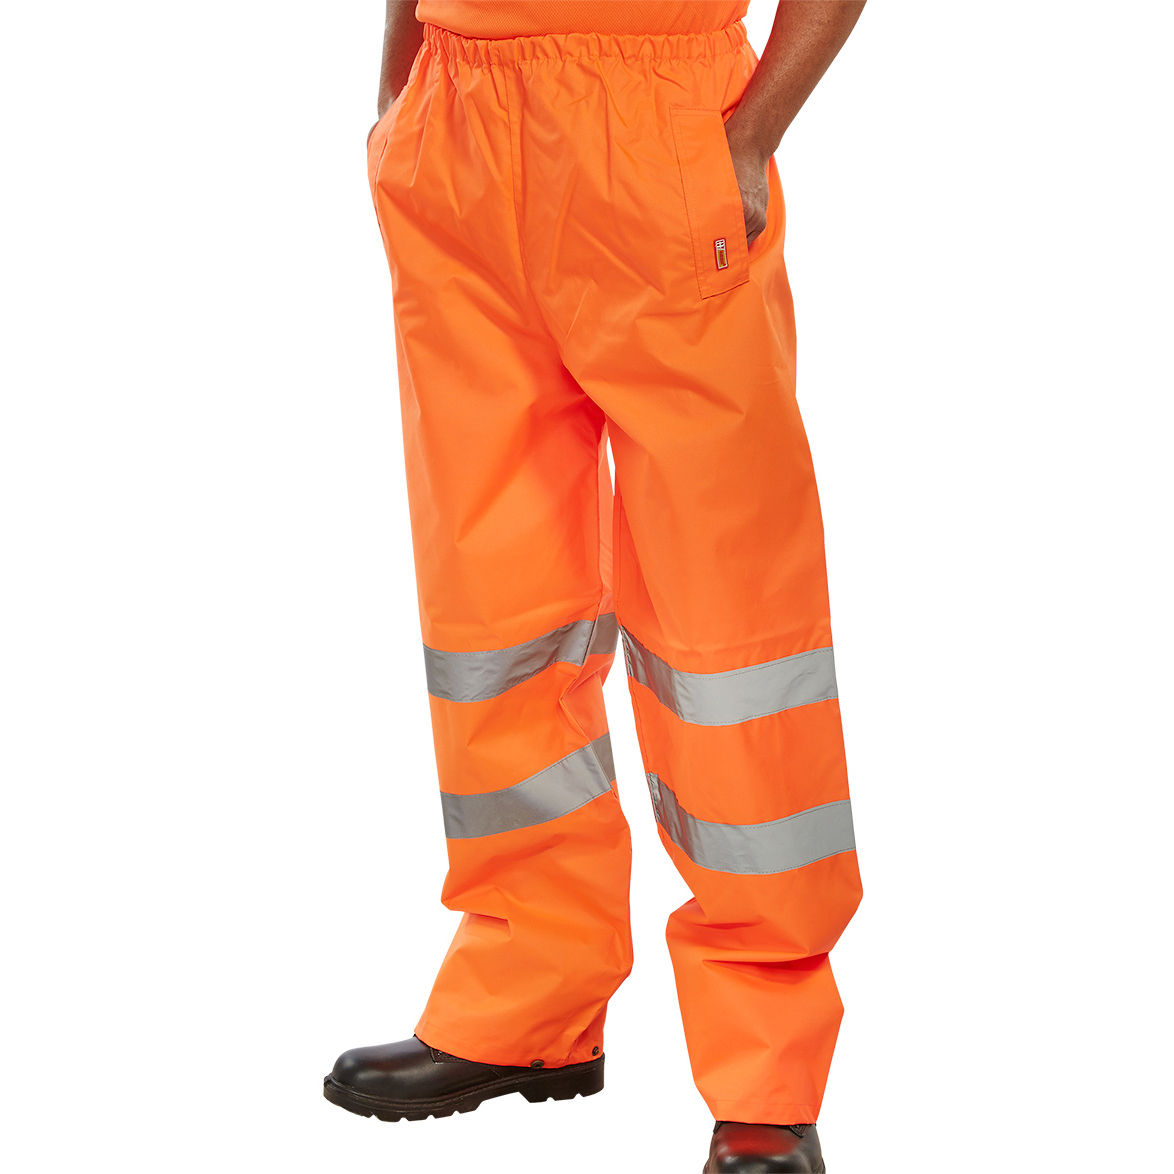 BSeen Traffic Trousers Hi-Vis Reflective Tape 2XL Orange Ref TENORXXL *Up to 3 Day Leadtime*